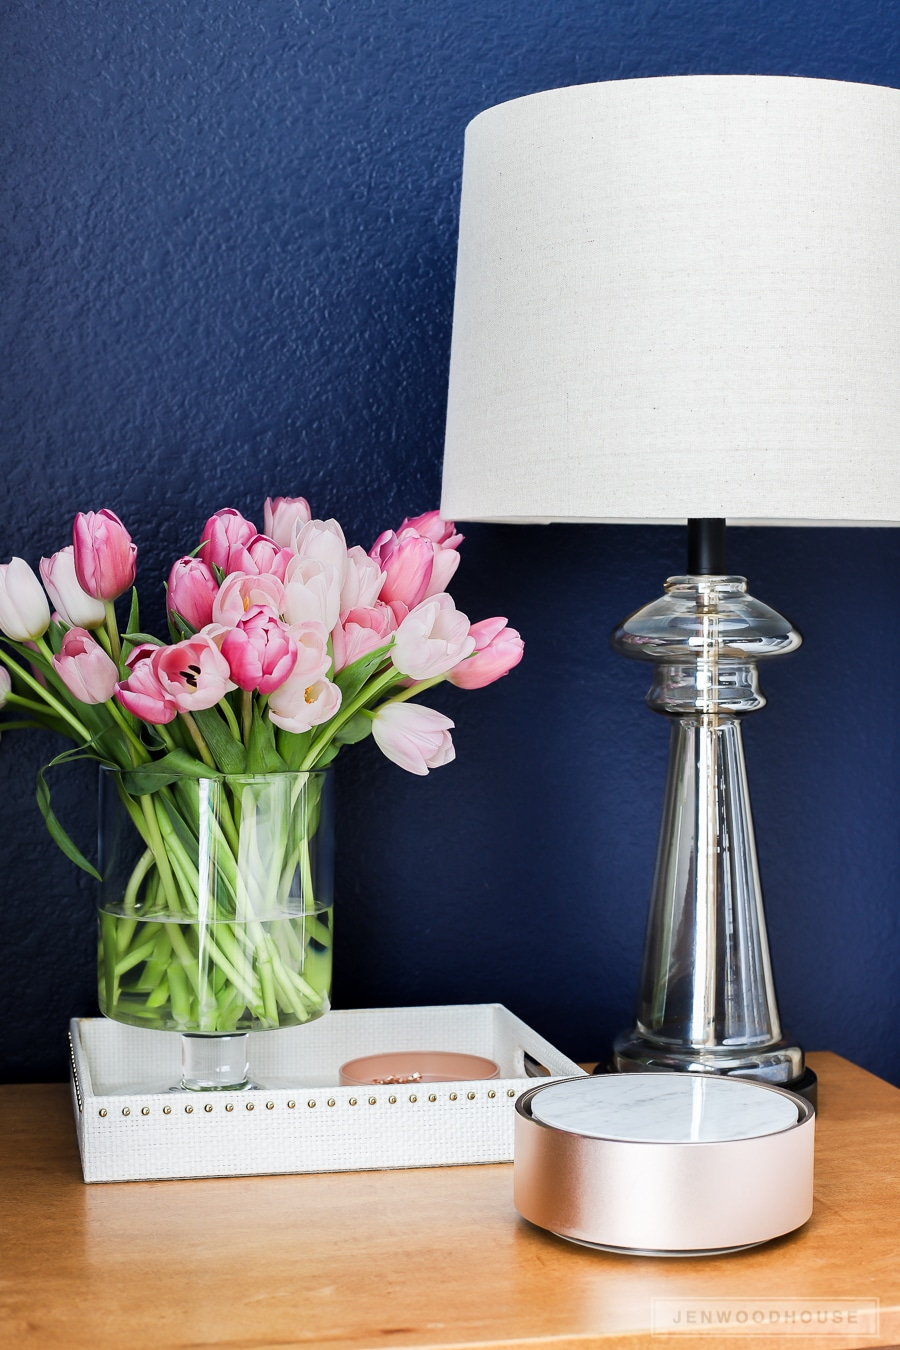 Add fresh tulips to your nightstand to bring Spring into your bedroom